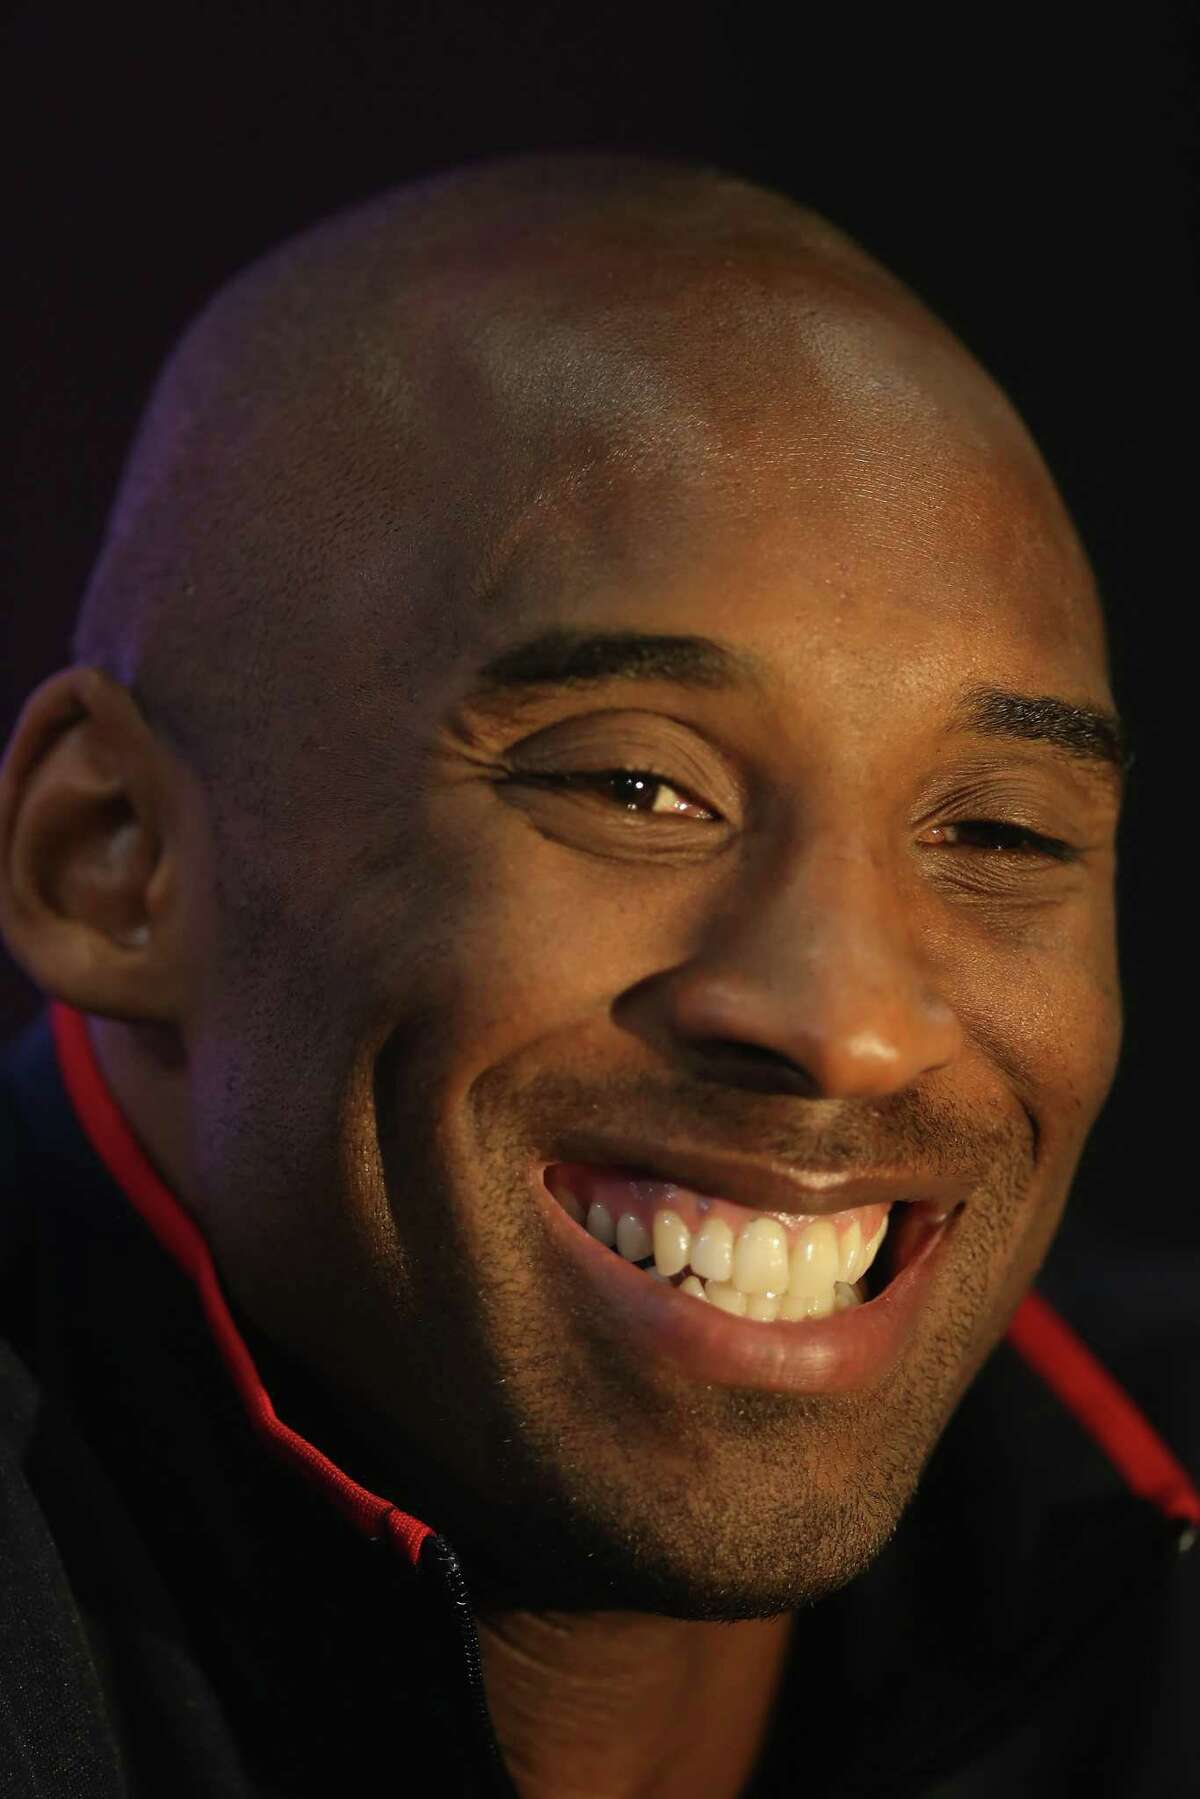 FILE - JANUARY 26, 2020: It's been reported that legendary basketball player Kobe Bryant has been killed in a helicopter crash in Calabasas, California. LONDON, ENGLAND - JULY 27: Kobe Bryant smiles during a press conference ahead of the London 2012 Olympics on July 27, 2012 in London, England. (Photo by Jeff Gross/Getty Images)